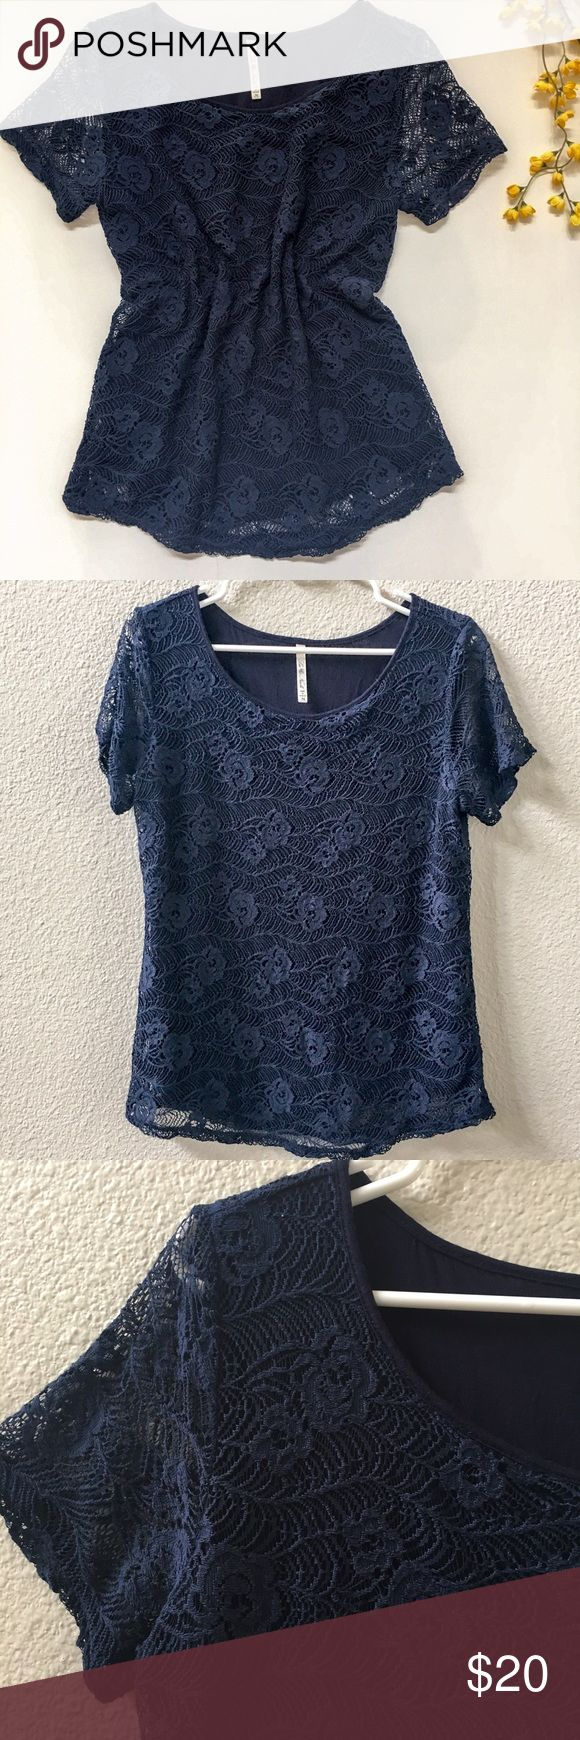 Navy short sleeve top with lace overlay Navy blue short sleeve top with lace overlay. Lining is sleeveless so lace shows on arms and hem line. Pretty floral pattern. Great dressy tee. Good used condition. Some pilling on inside of the top but it doesn't show and the lace looks great! Leo & Nicole Tops